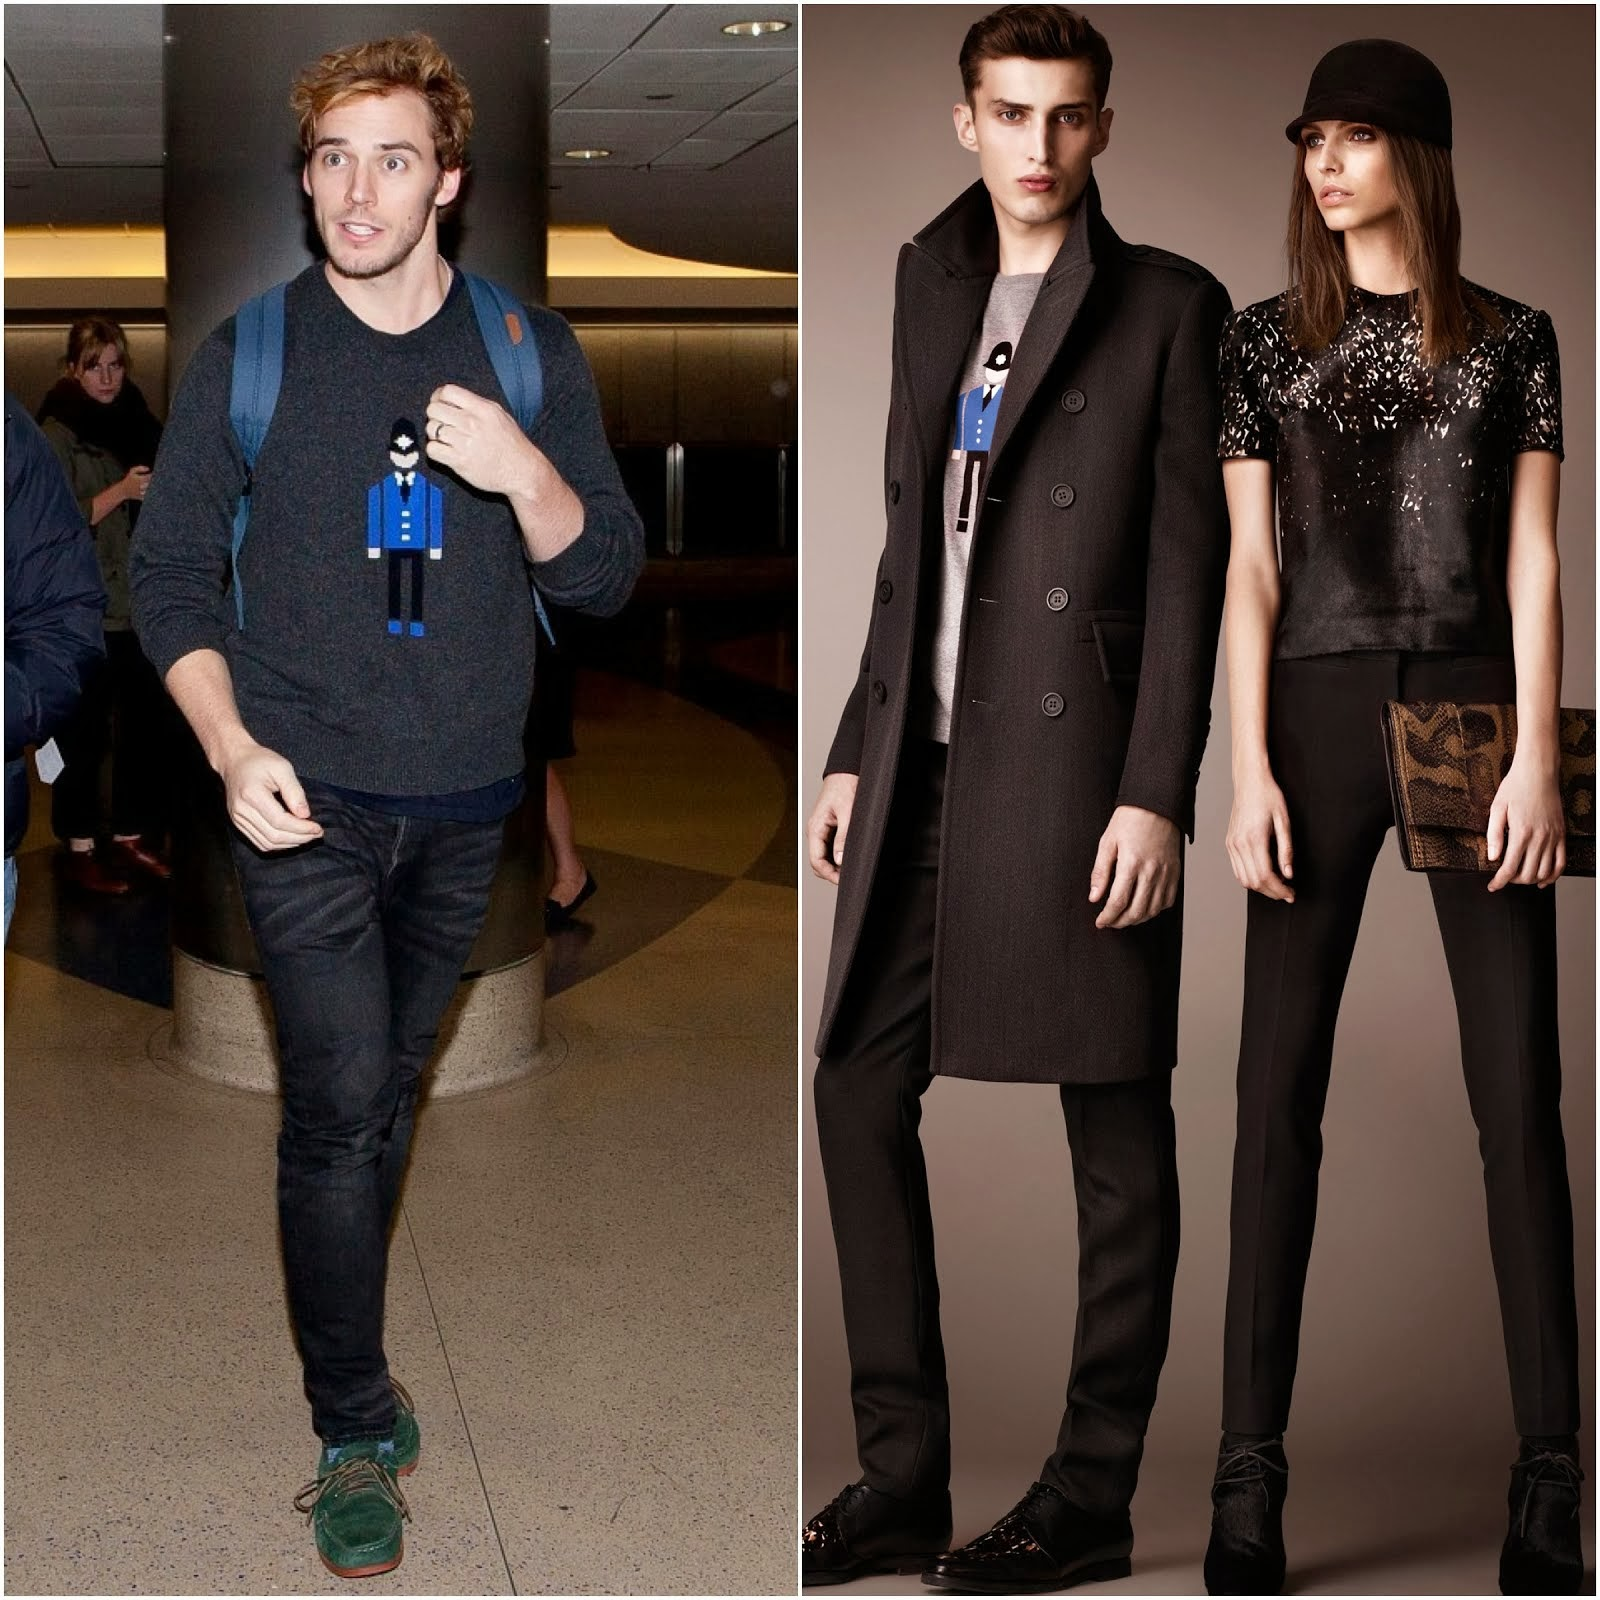 Sam Claflin in Burberry soldier / intarsia cashmere sweater - LAX Airport November 2013